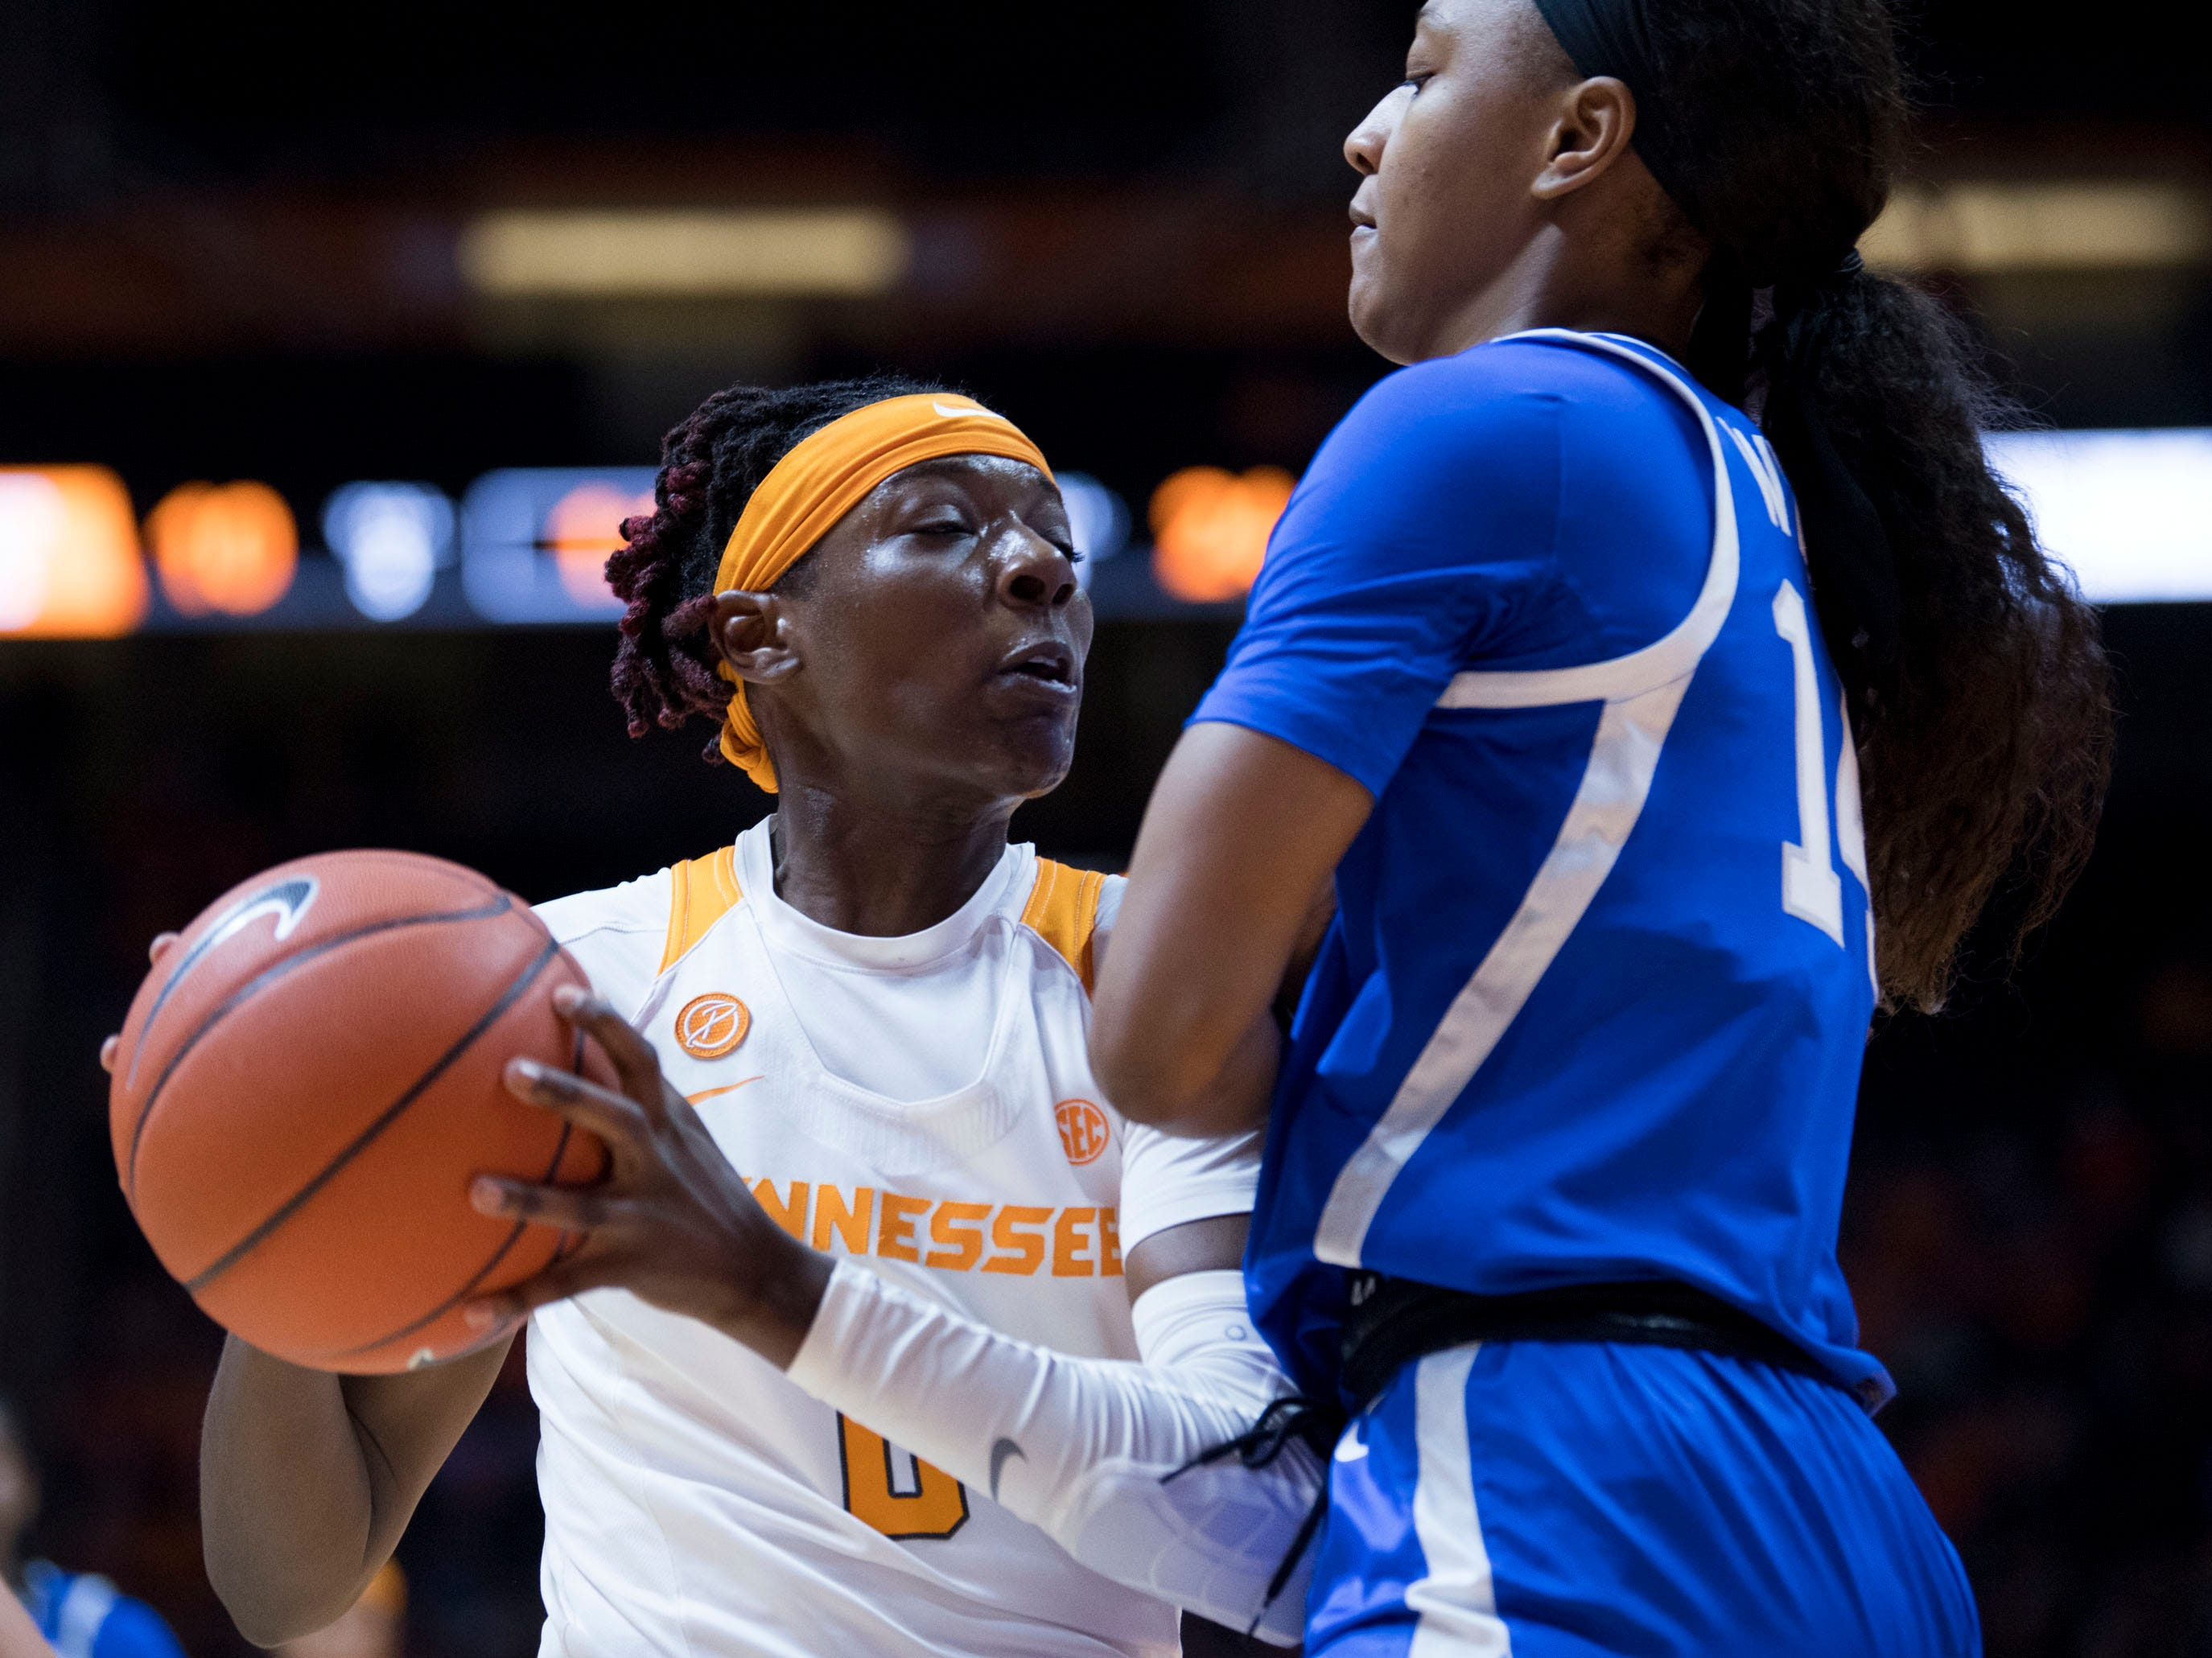 Tennessee's Rennia Davis (0) comes up against Kentucky's Tatyana Wyatt (14) on Thursday, January 10, 2019.